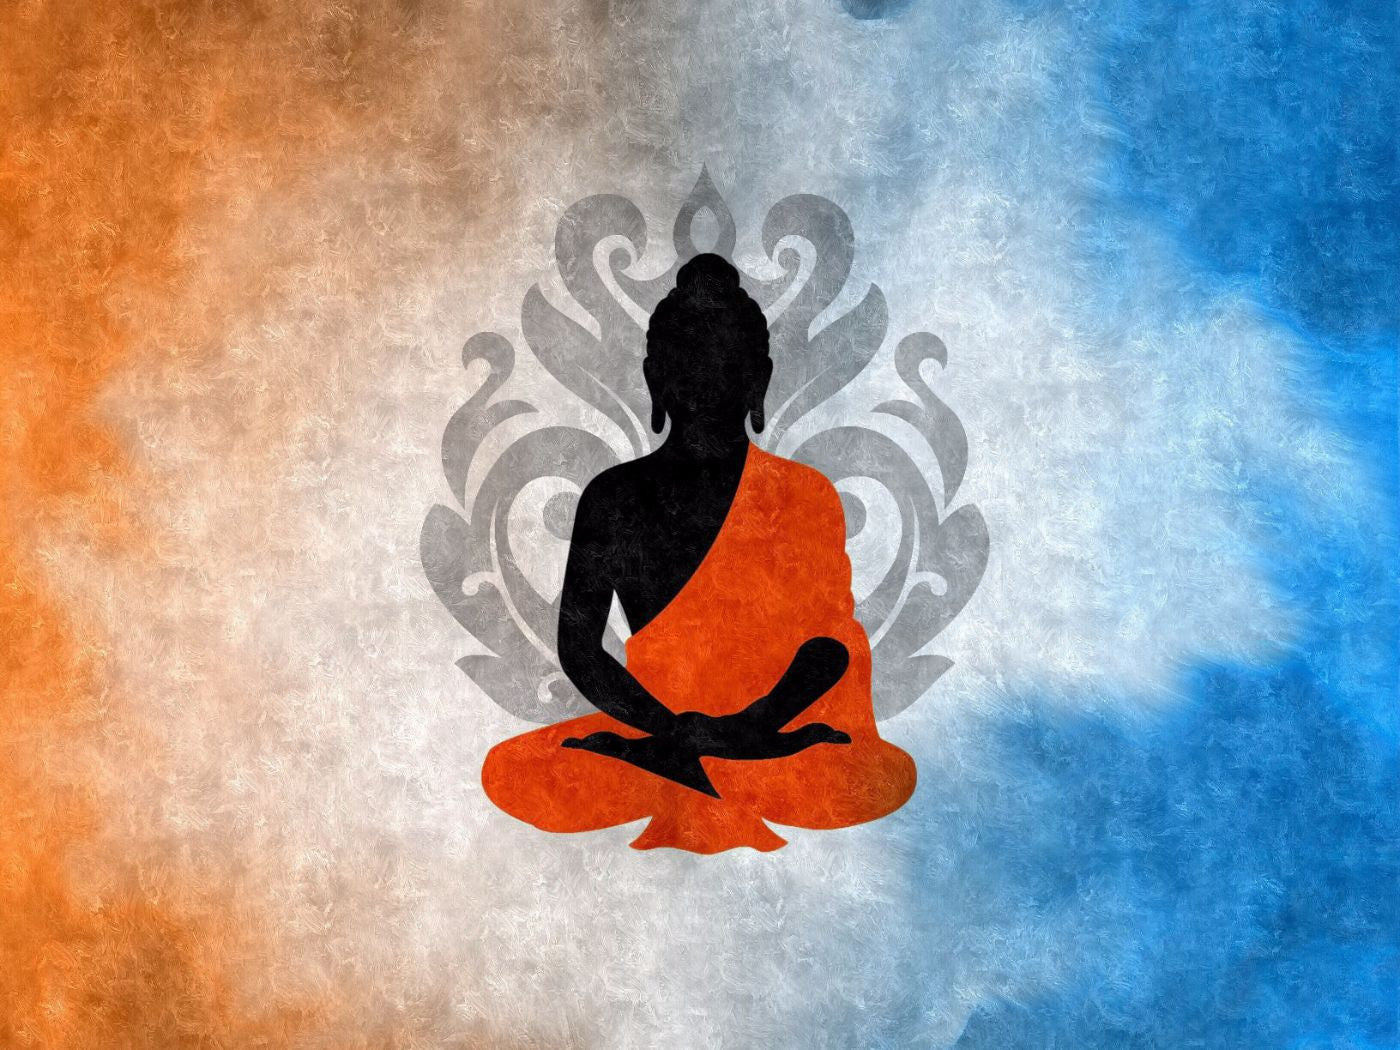 Buddha Silhouette With Lotus Flower Background Art Prints By James